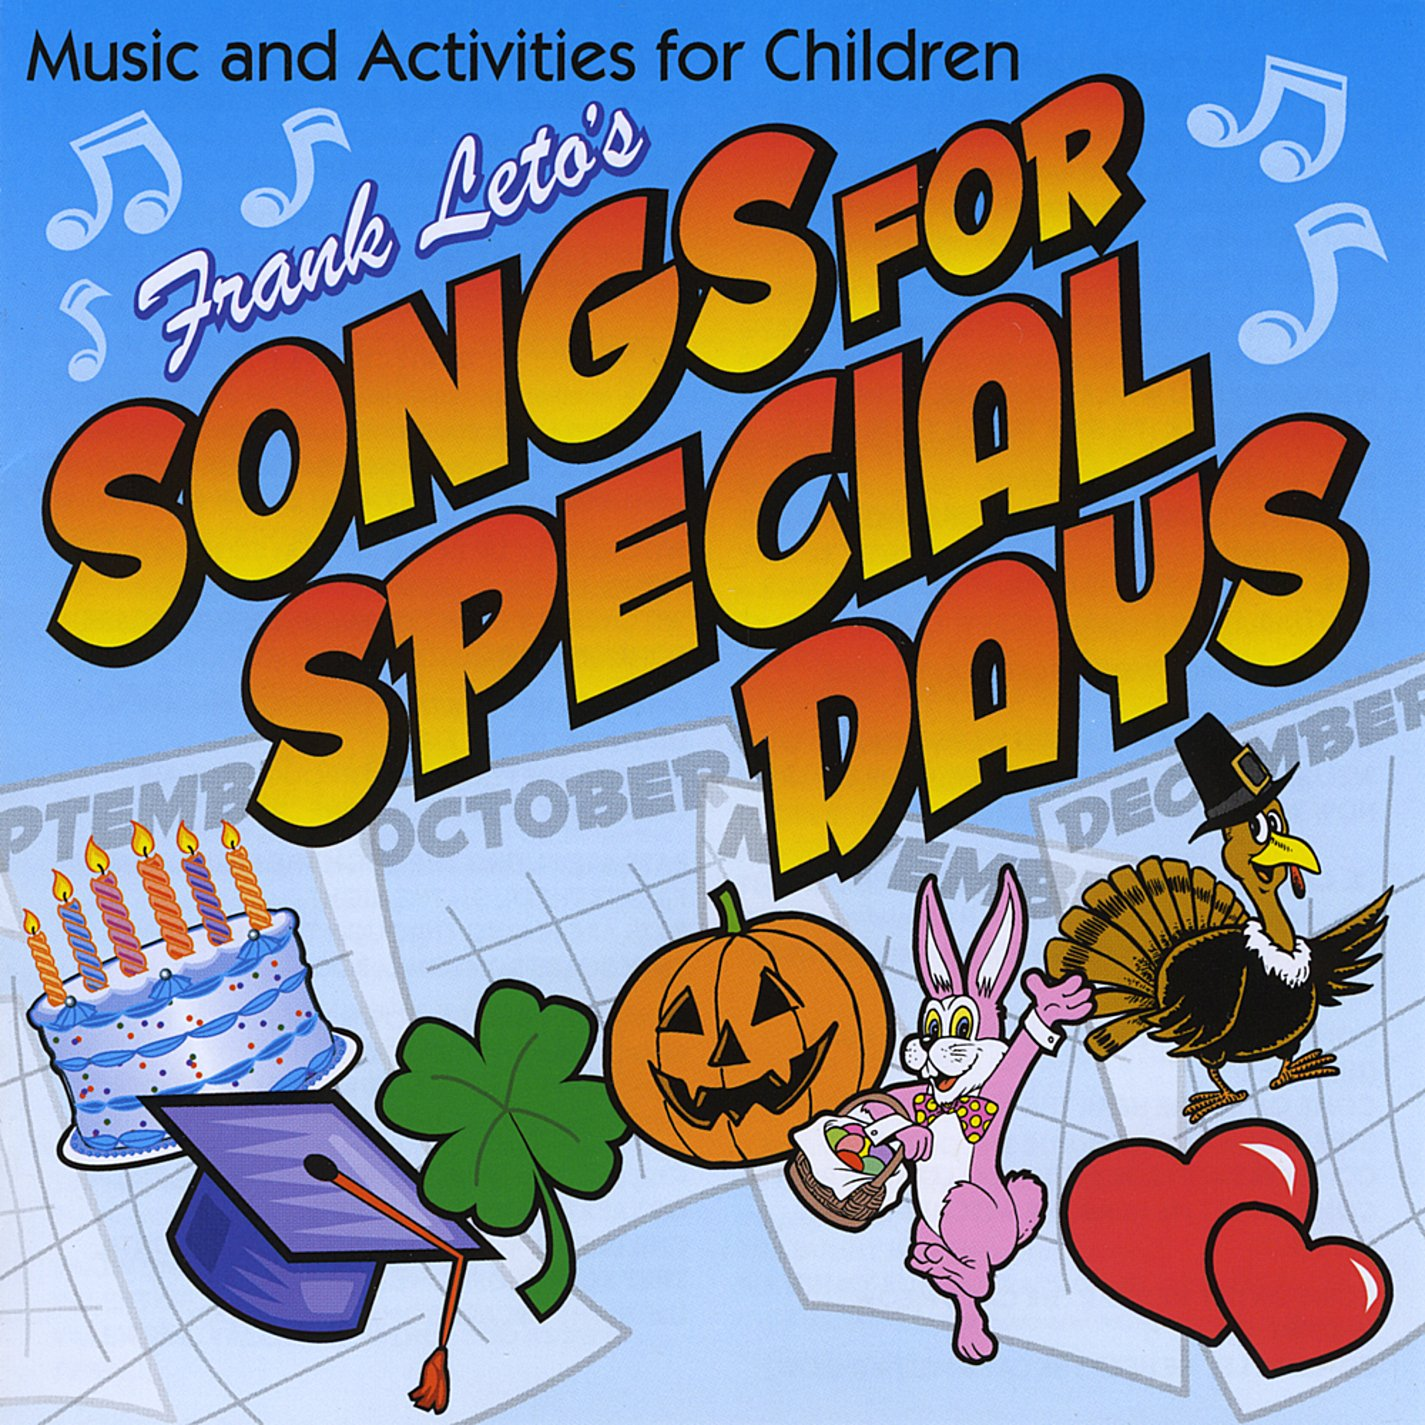 Songs for Special Days                                                                                                                                                                                                                                                    <span class=